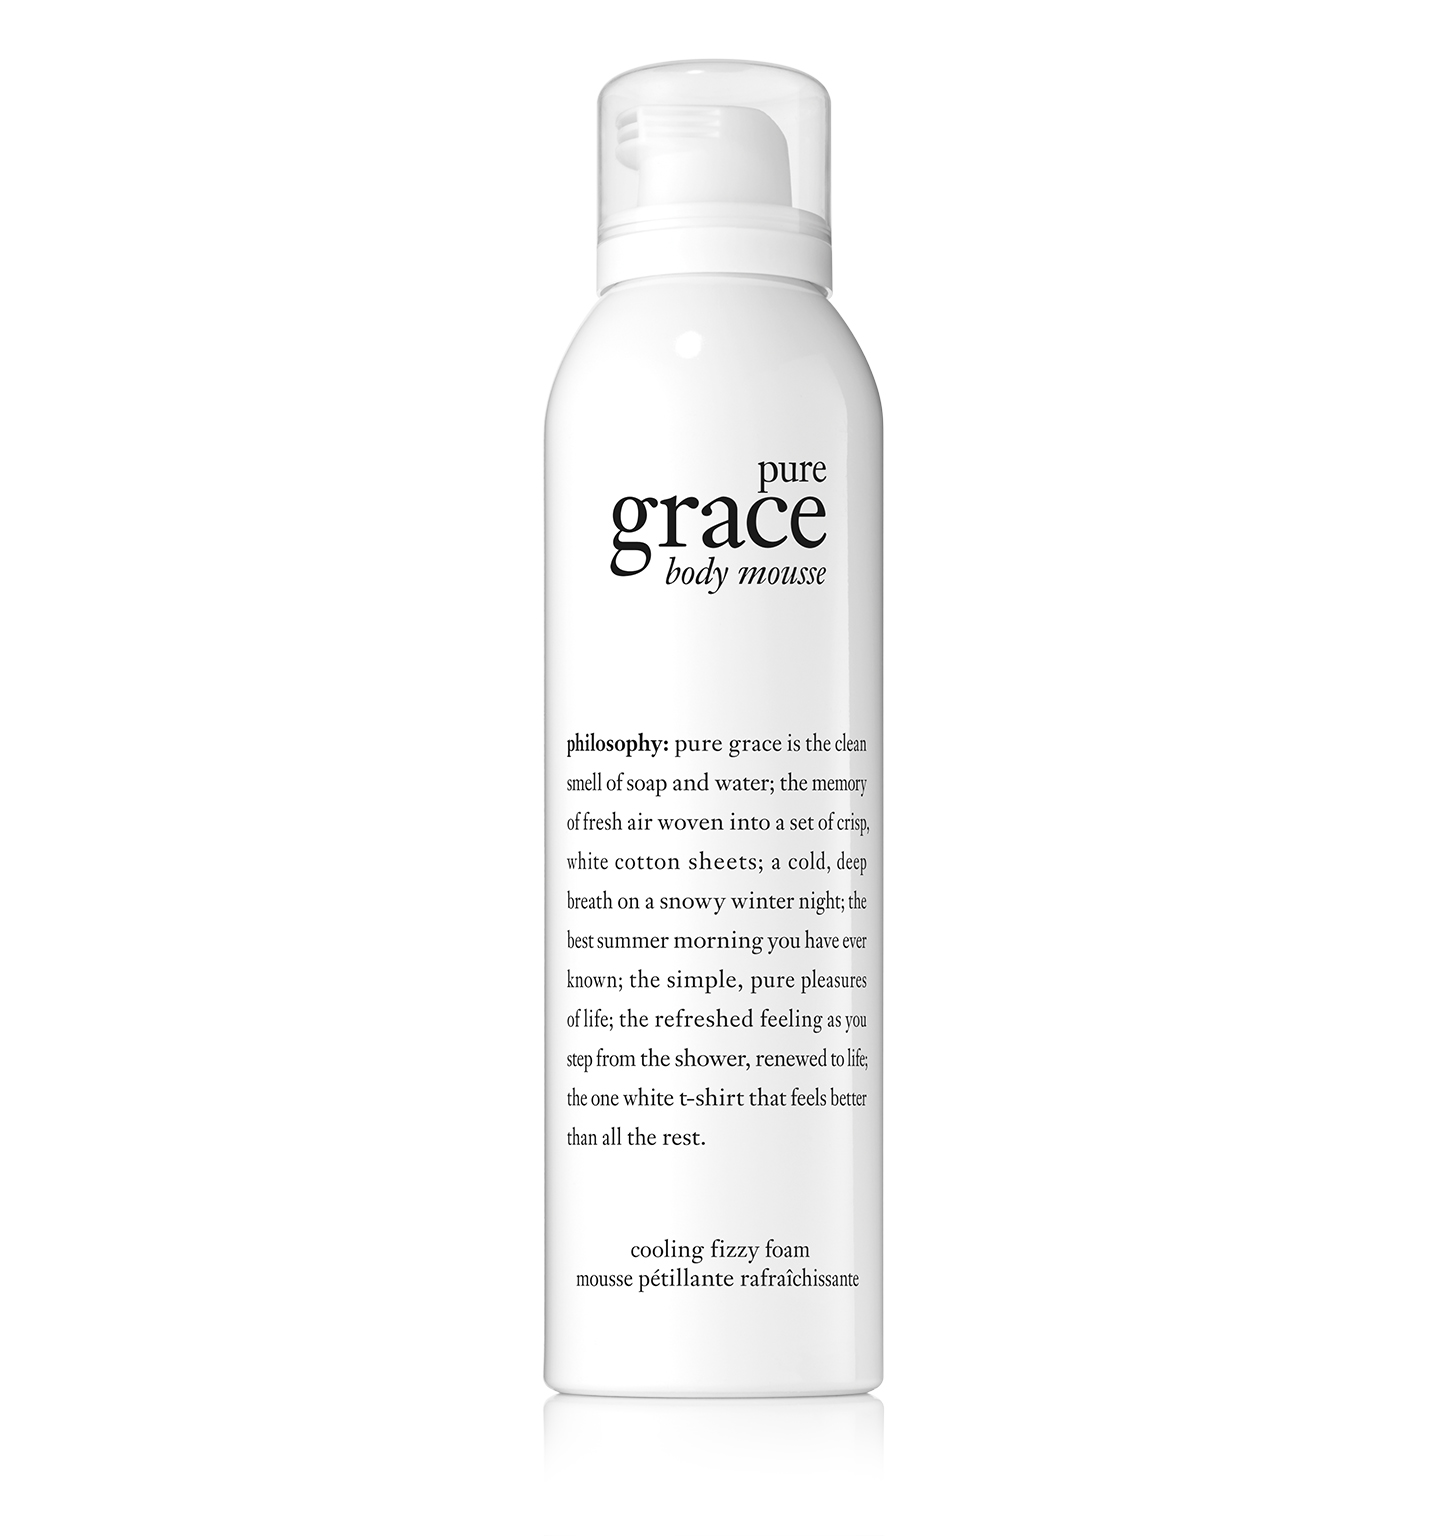 philosophy, pure grace body serum mousse